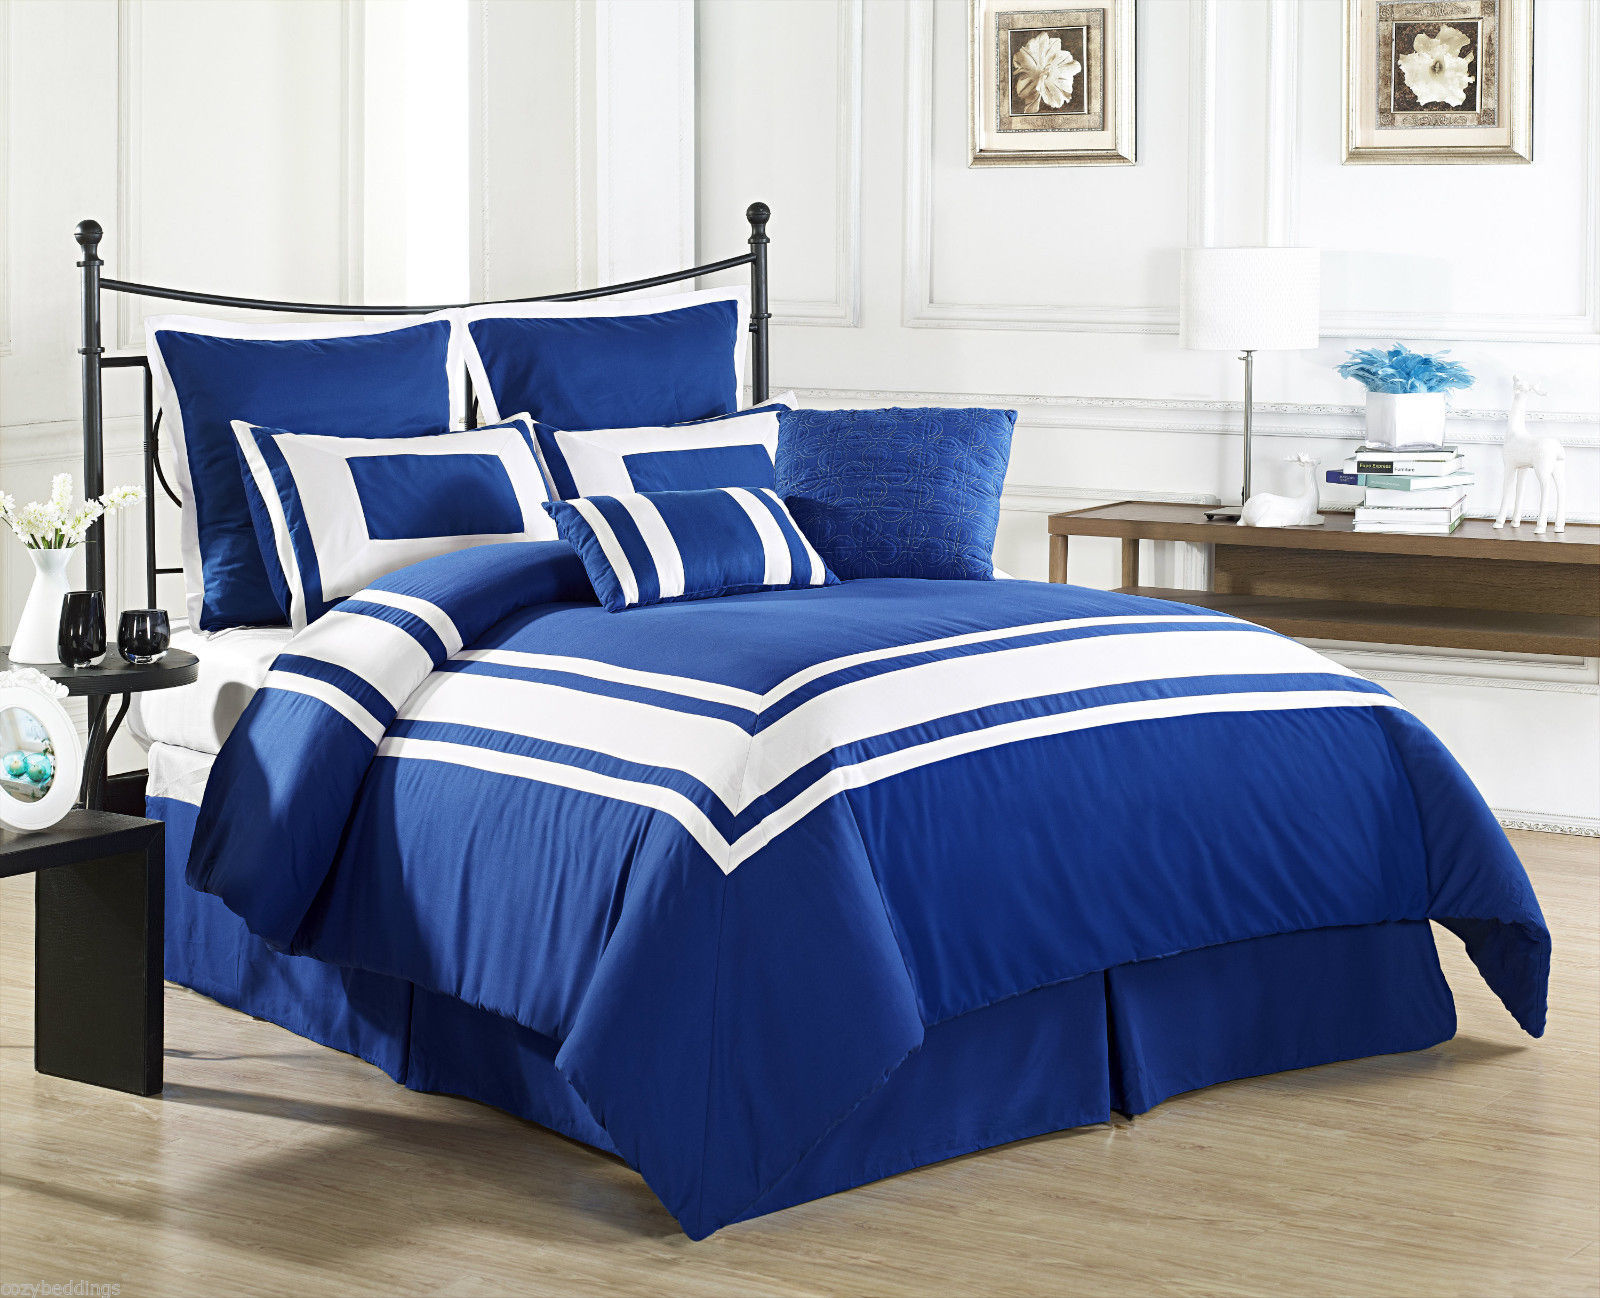 Image of: Dr Who Duvet Cover